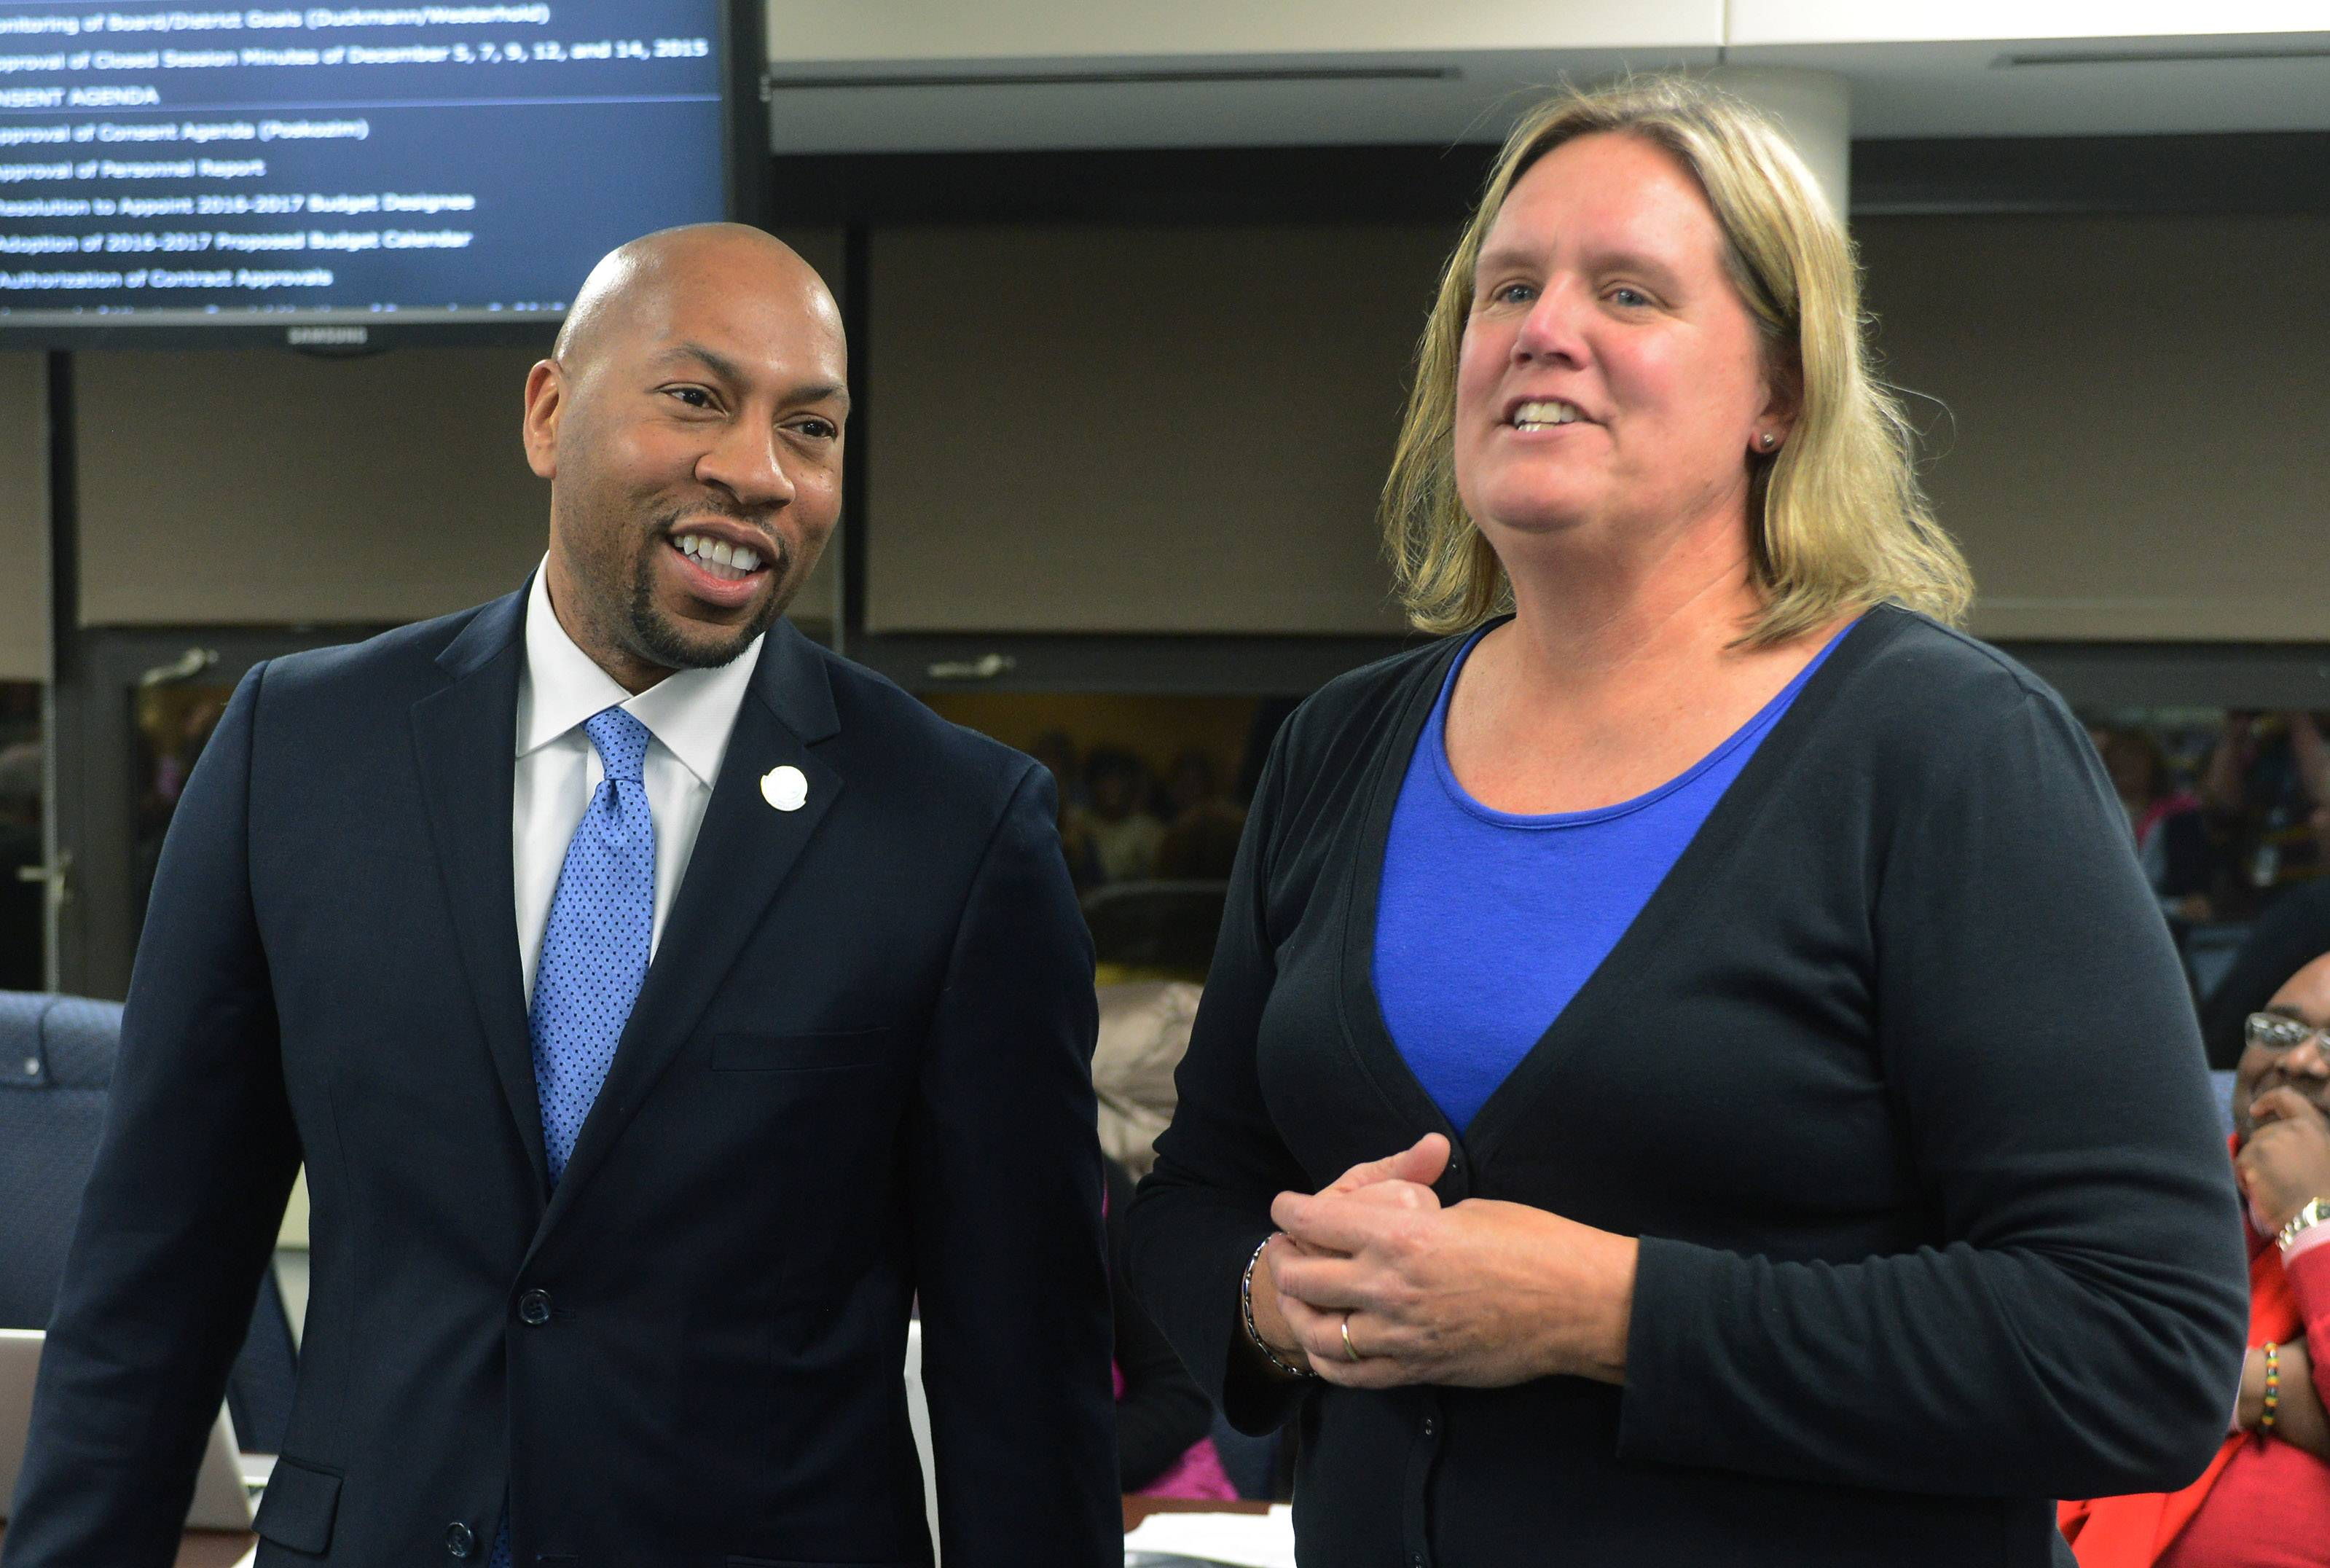 Des Plaines Elementary School District 62 Board President Stephanie Duckmann introduces Floyd Williams Jr. as the district's next superintendent Tuesday night. He will take over for retiring Superintendent Jane Westerhold on July 1.